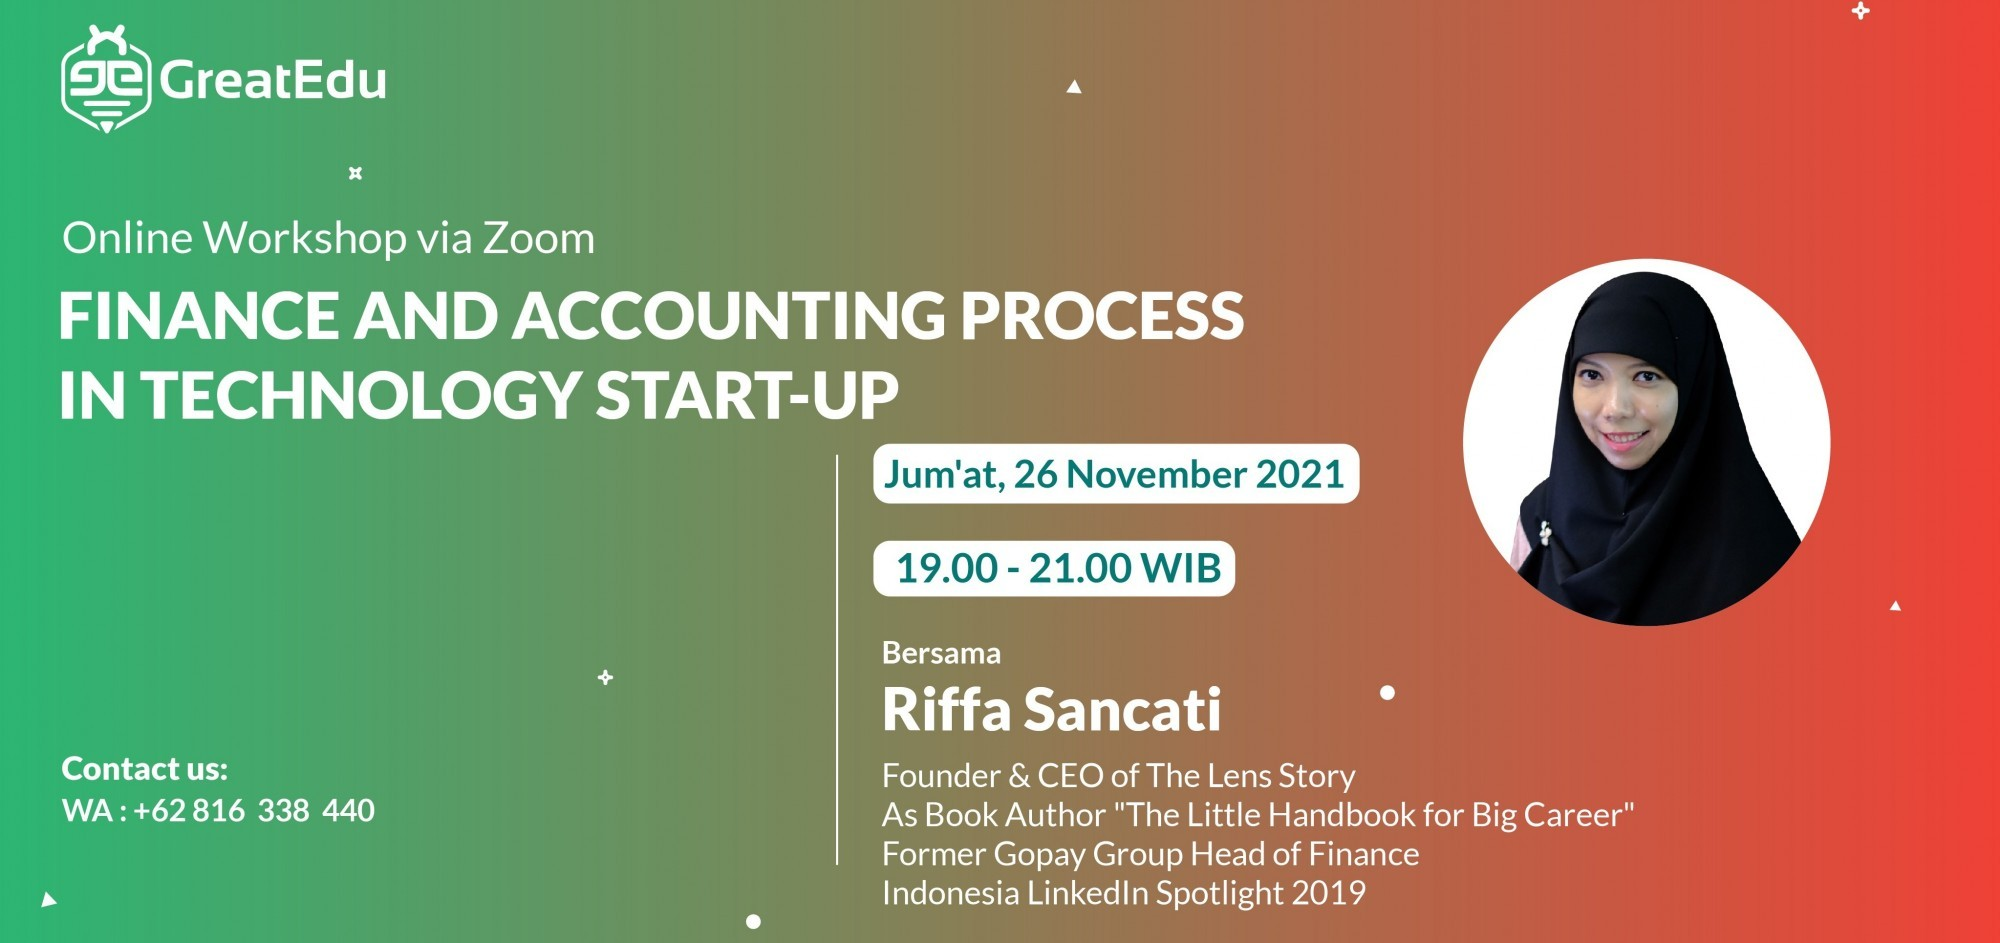 Finance and Accounting Process in Technology Start-up